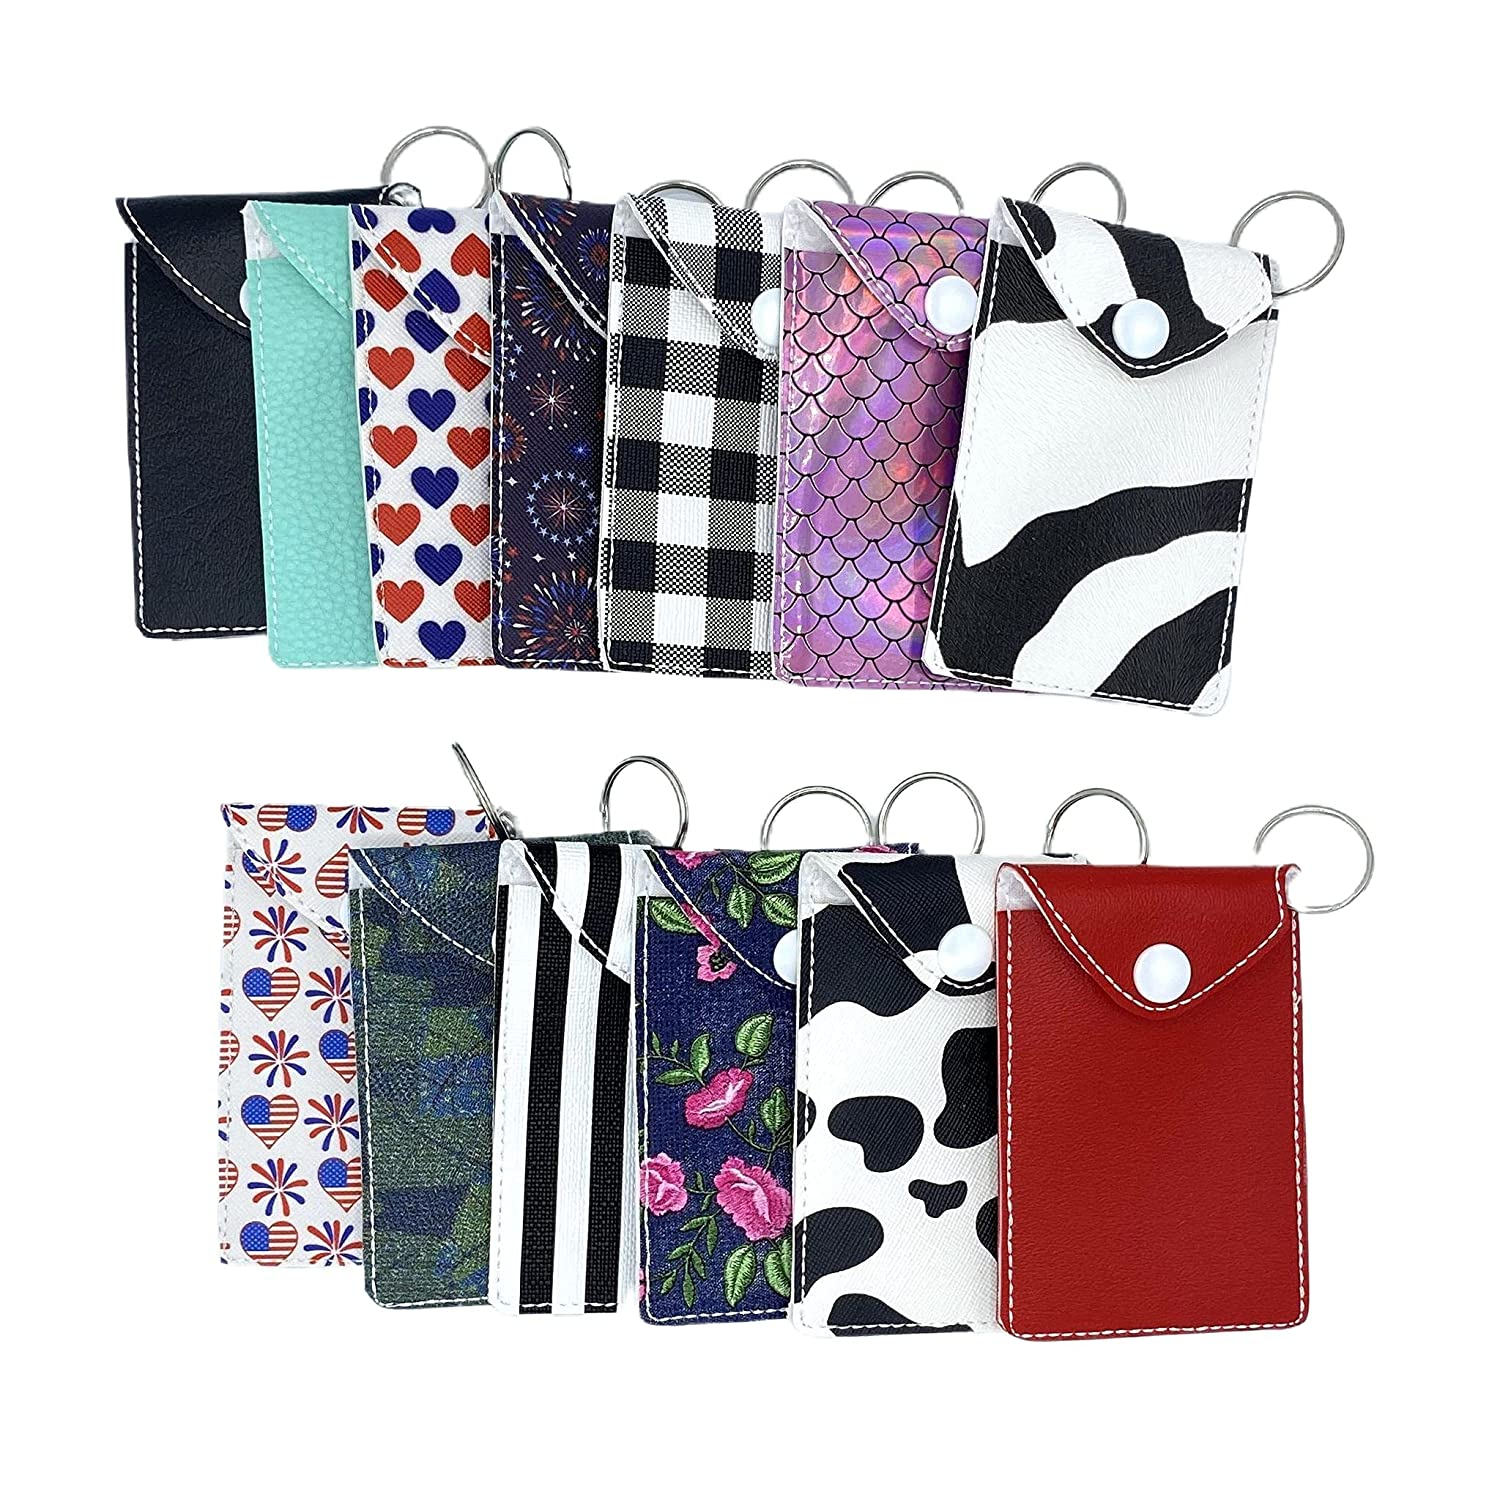 Purchase Faux Leather Ranking TOP4 Business Card Credit with ID Keychain Holder